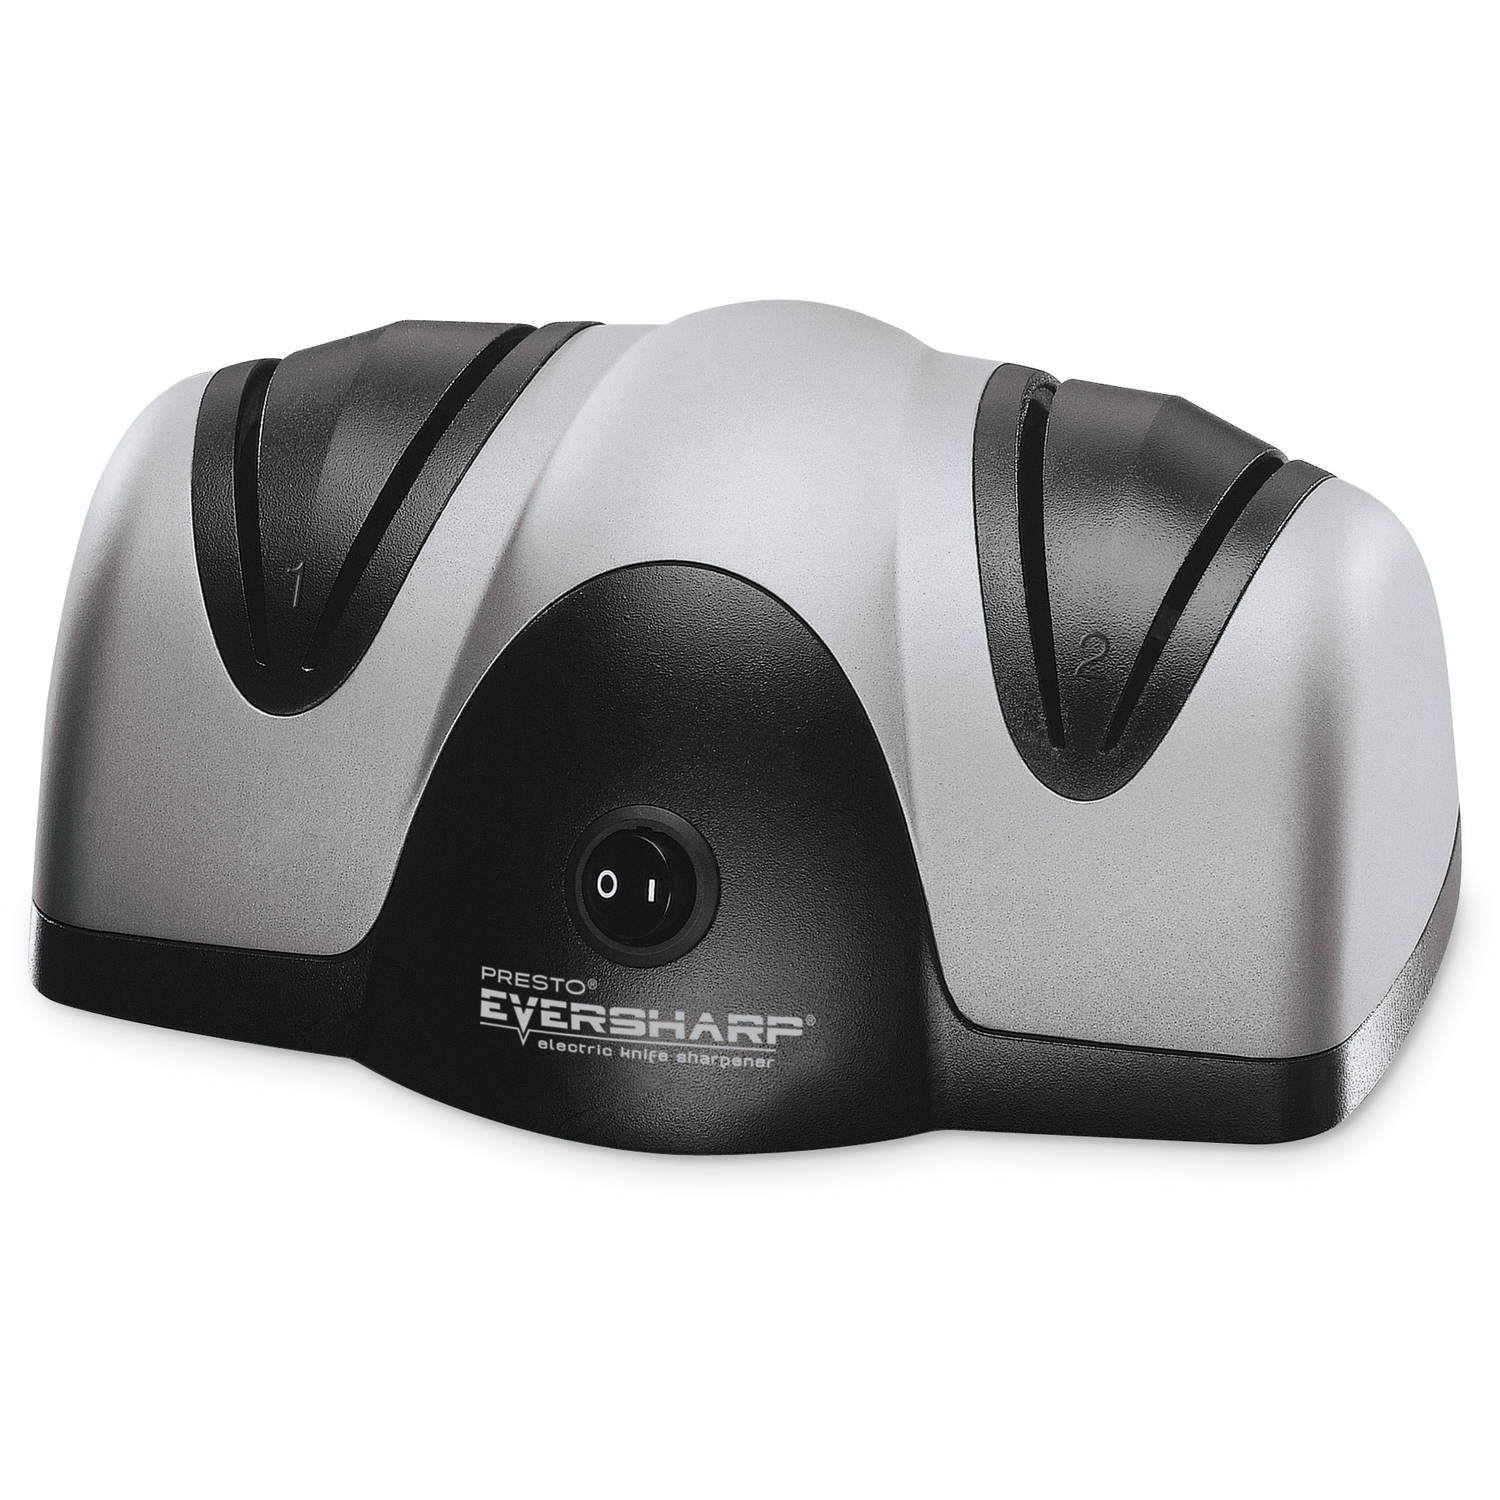 Presto EverSharp® electric knife sharpener 08800